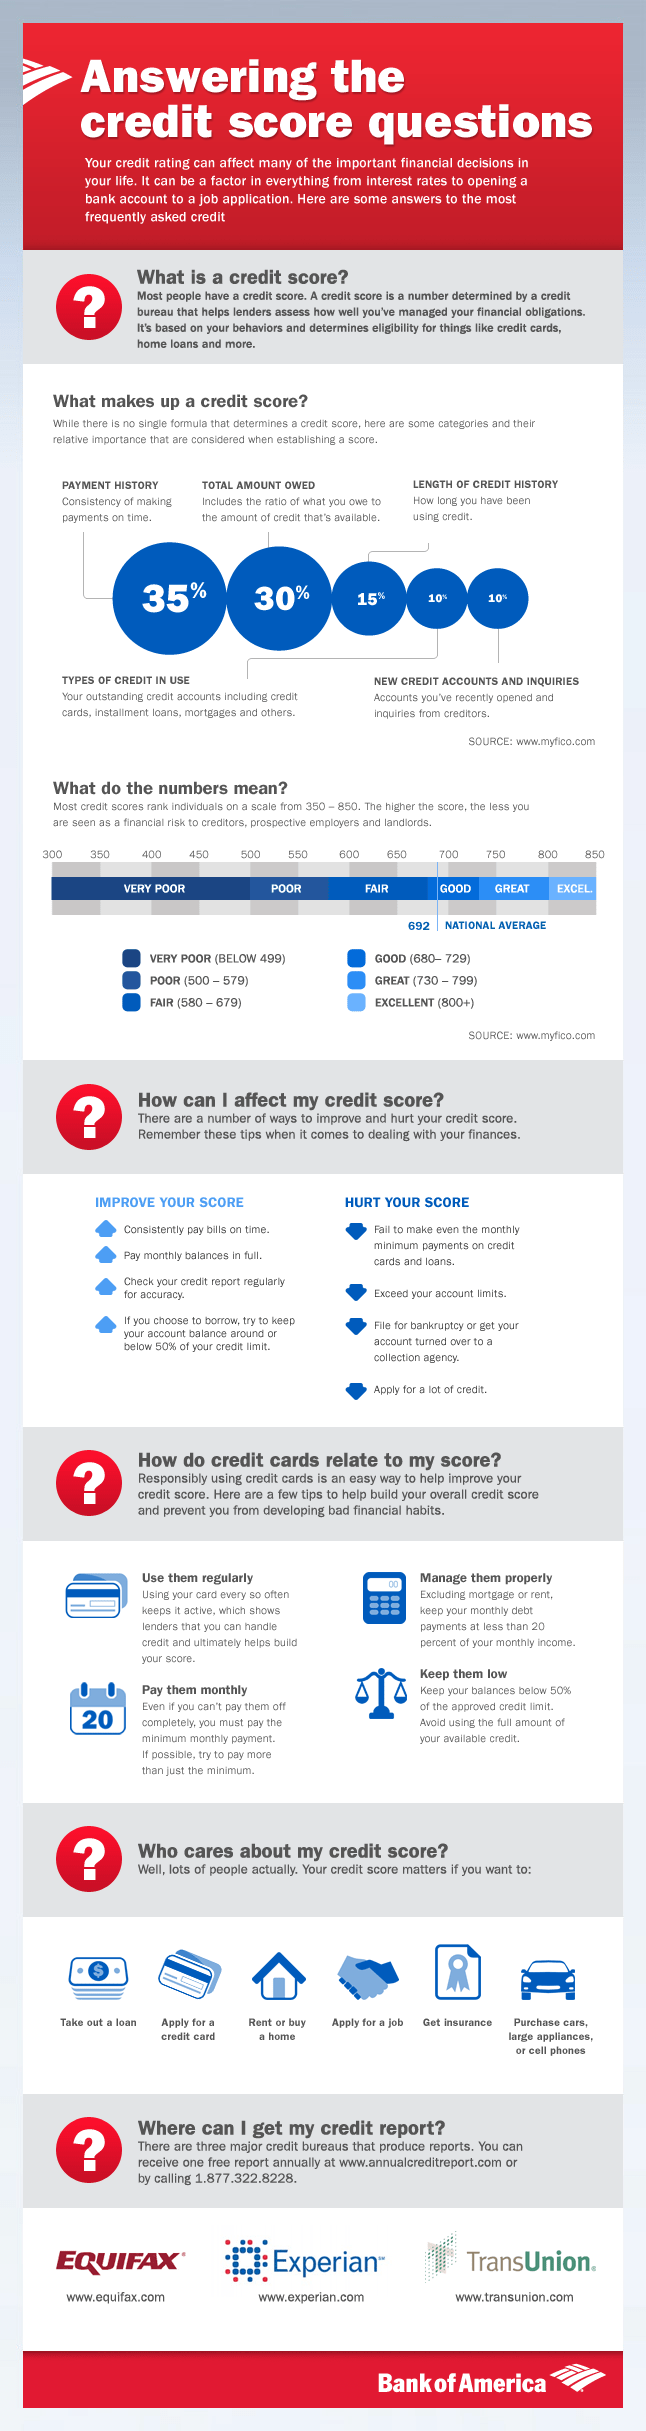 tips-on-how-to-improve-your-credit-score_509d54e78701a